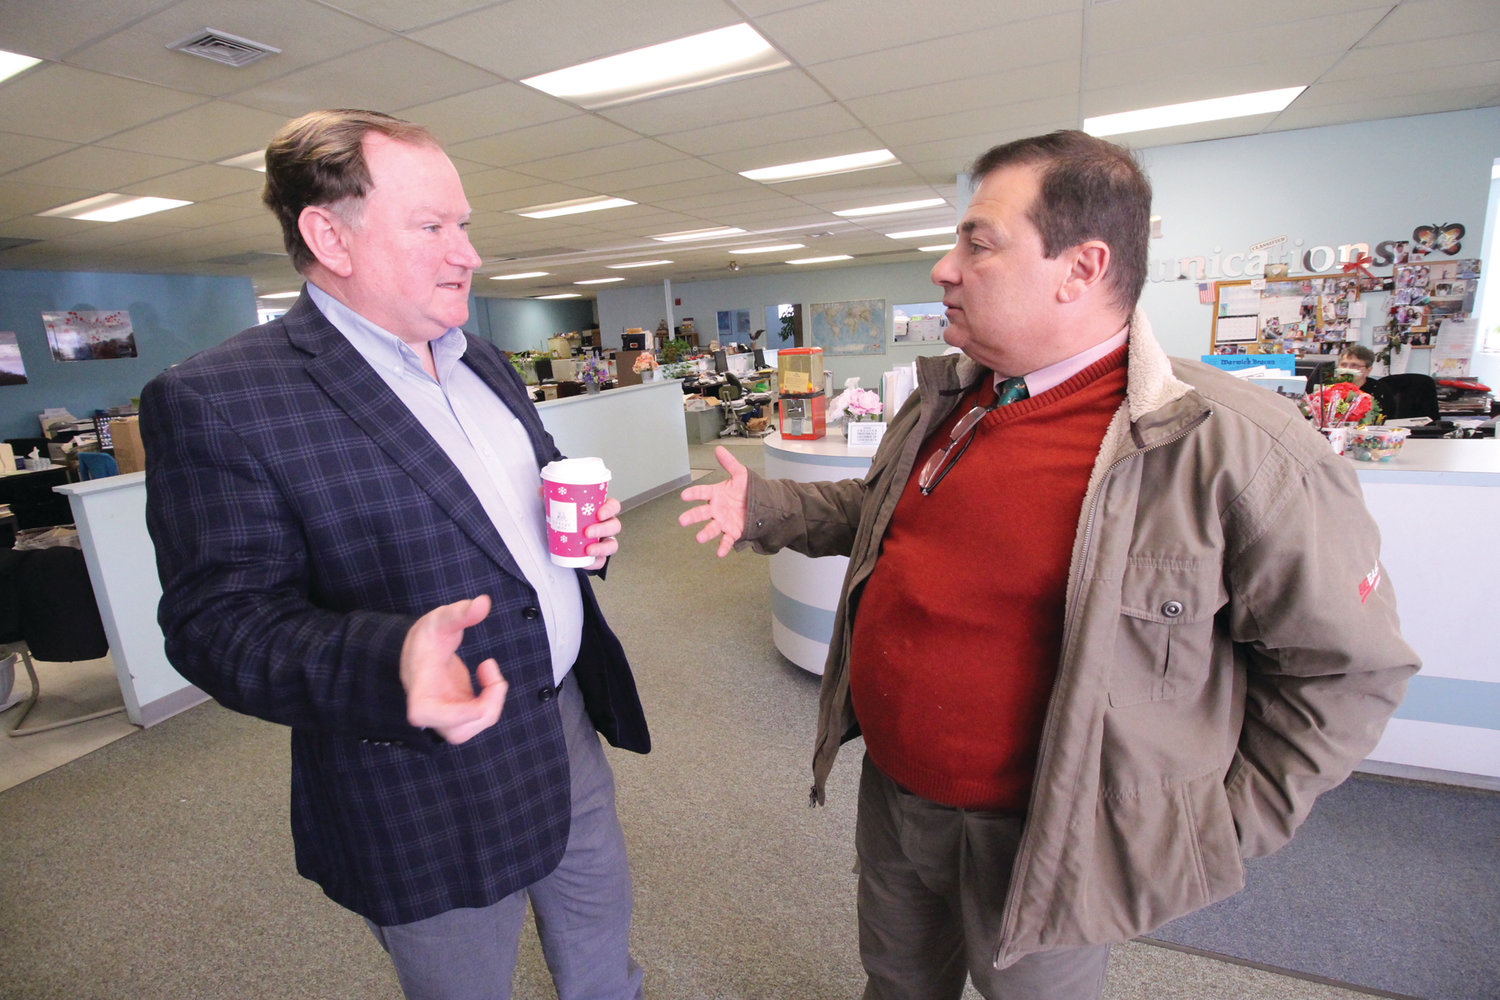 LEADERS LOOK AHEAD: Senate Majority Leader Michael McCaffrey, left, and House Majority Leader K. Joseph Shekarchi outlined their priorities for the coming legislative session during a recent visit to the Beacon Communications offices in Warwick.